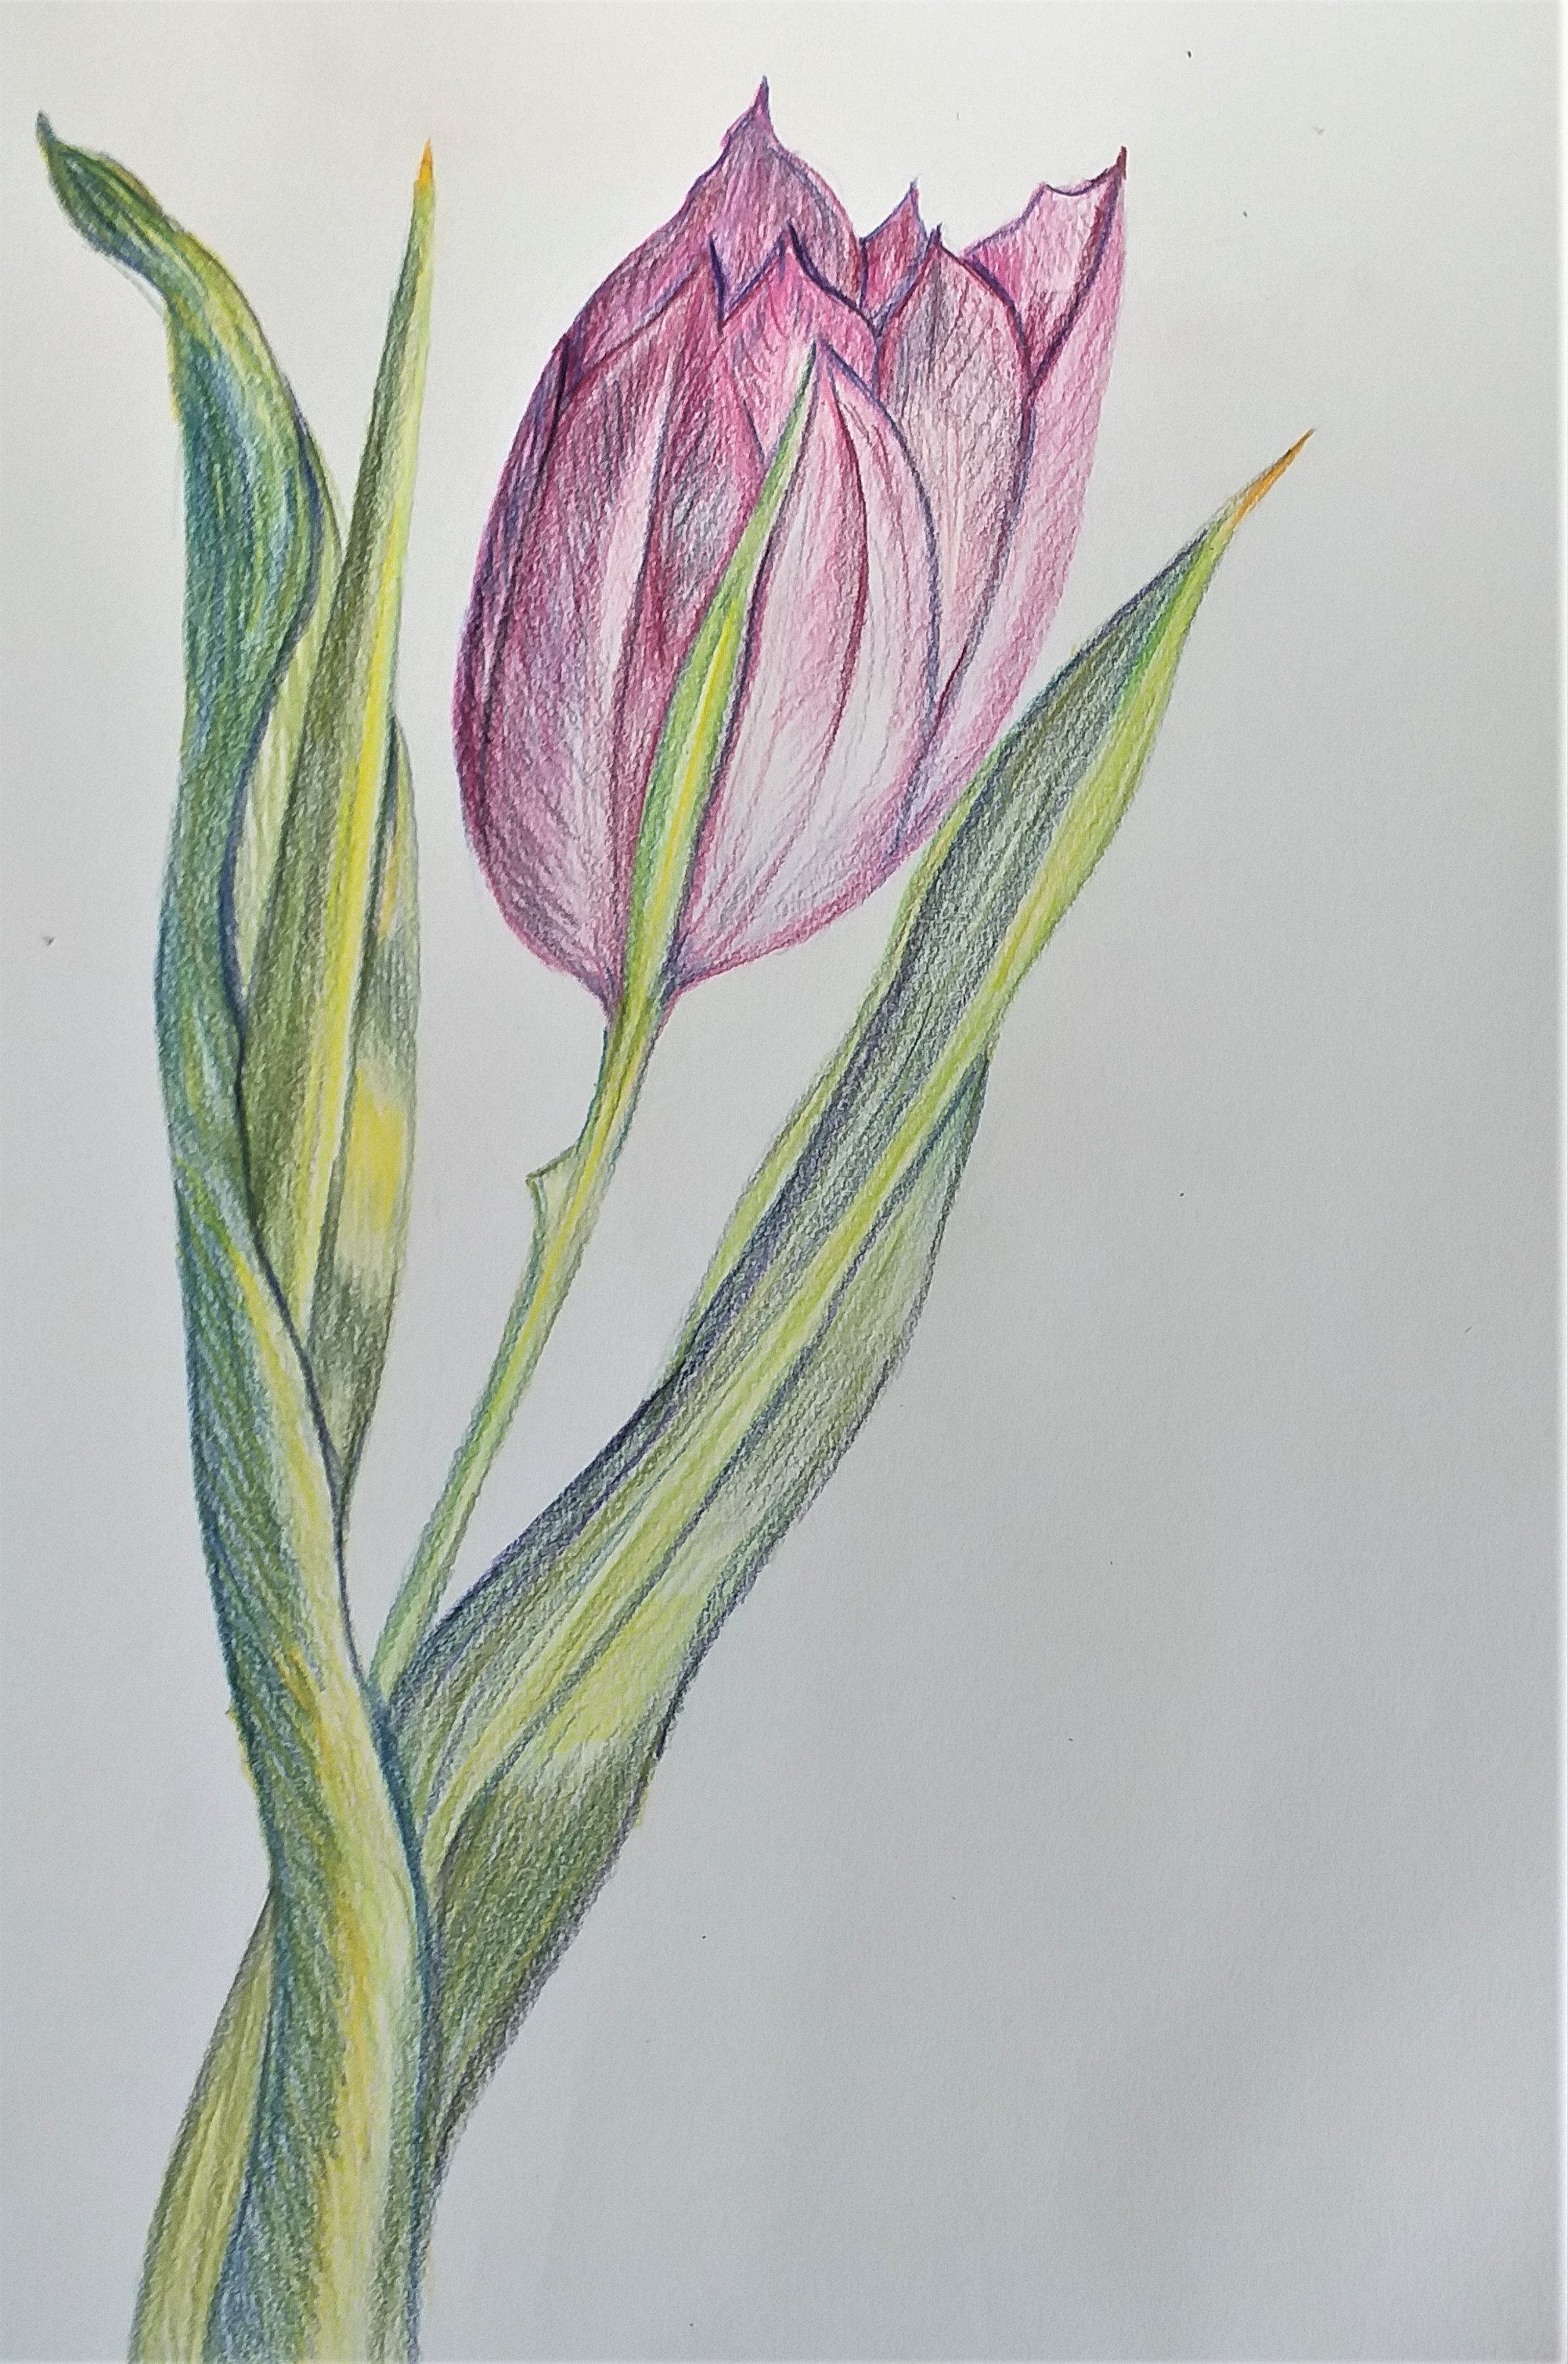 Learn how to draw at Art classes in Worcestershire